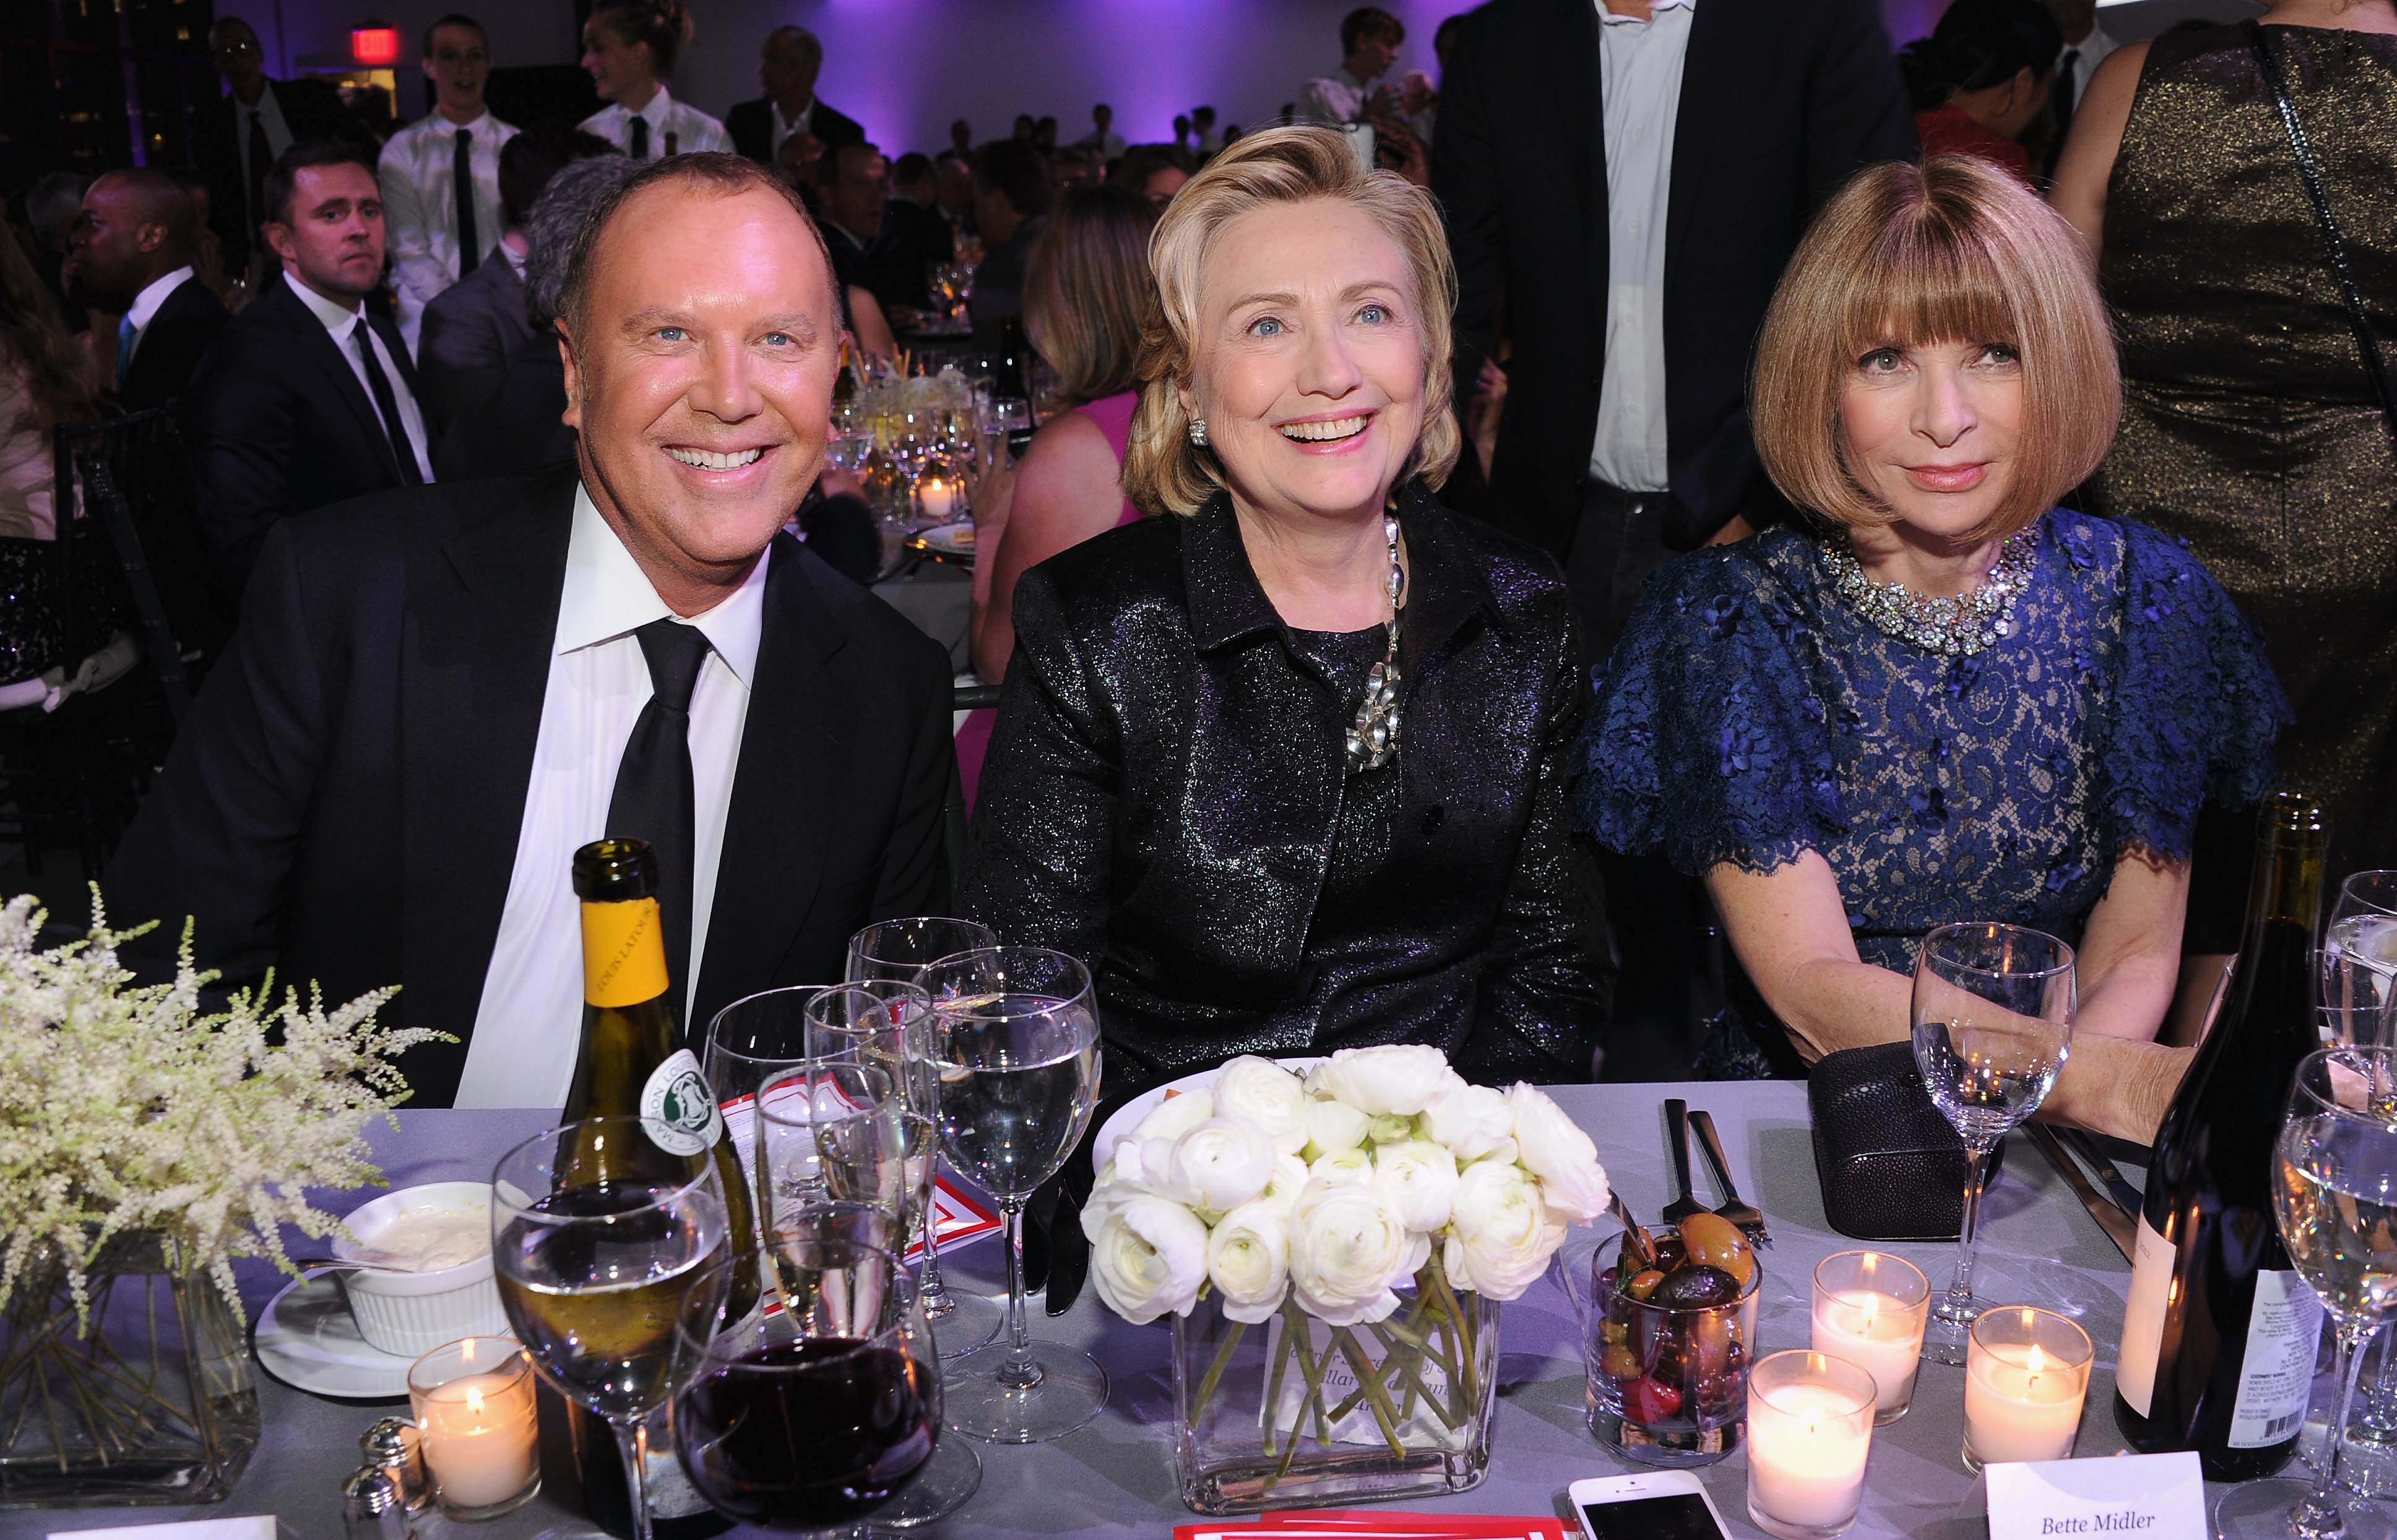 NEW YORK, NY - OCTOBER 16: (L-R) Designer Michael Kors, Hillary Rodham Clinton, recipient of the Michael Kors Award for Outstanding Community Service, and Vogue editor-in-chief Anna Wintour attend God's Love We Deliver 2013 Golden Heart Awards Celebration at Spring Studios on October 16, 2013 in New York City. (Photo by Dimitrios Kambouris/Getty Images for Michael Kors)